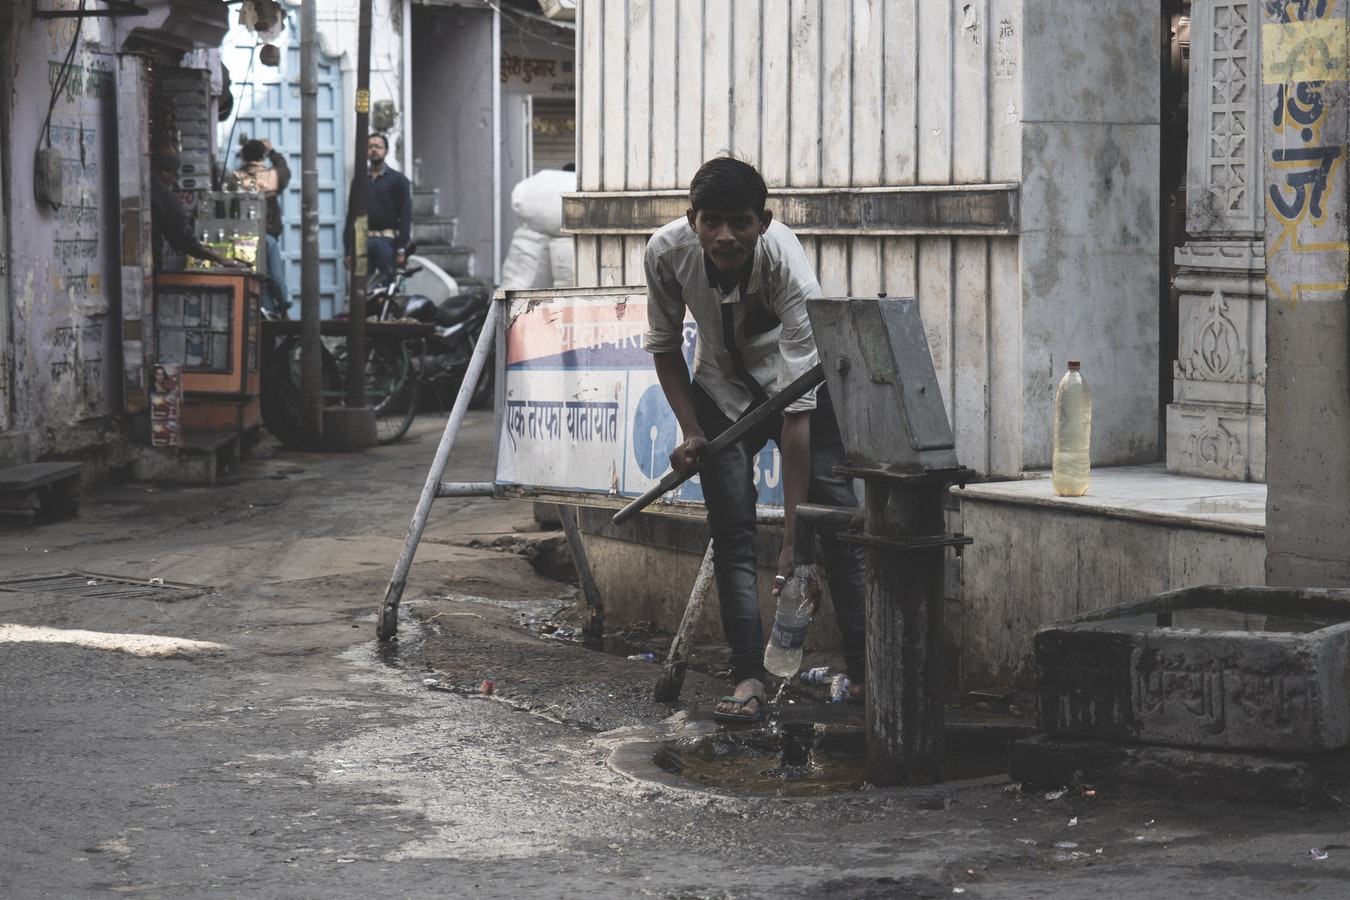 6 million people in India are facing the worst water crisis in history